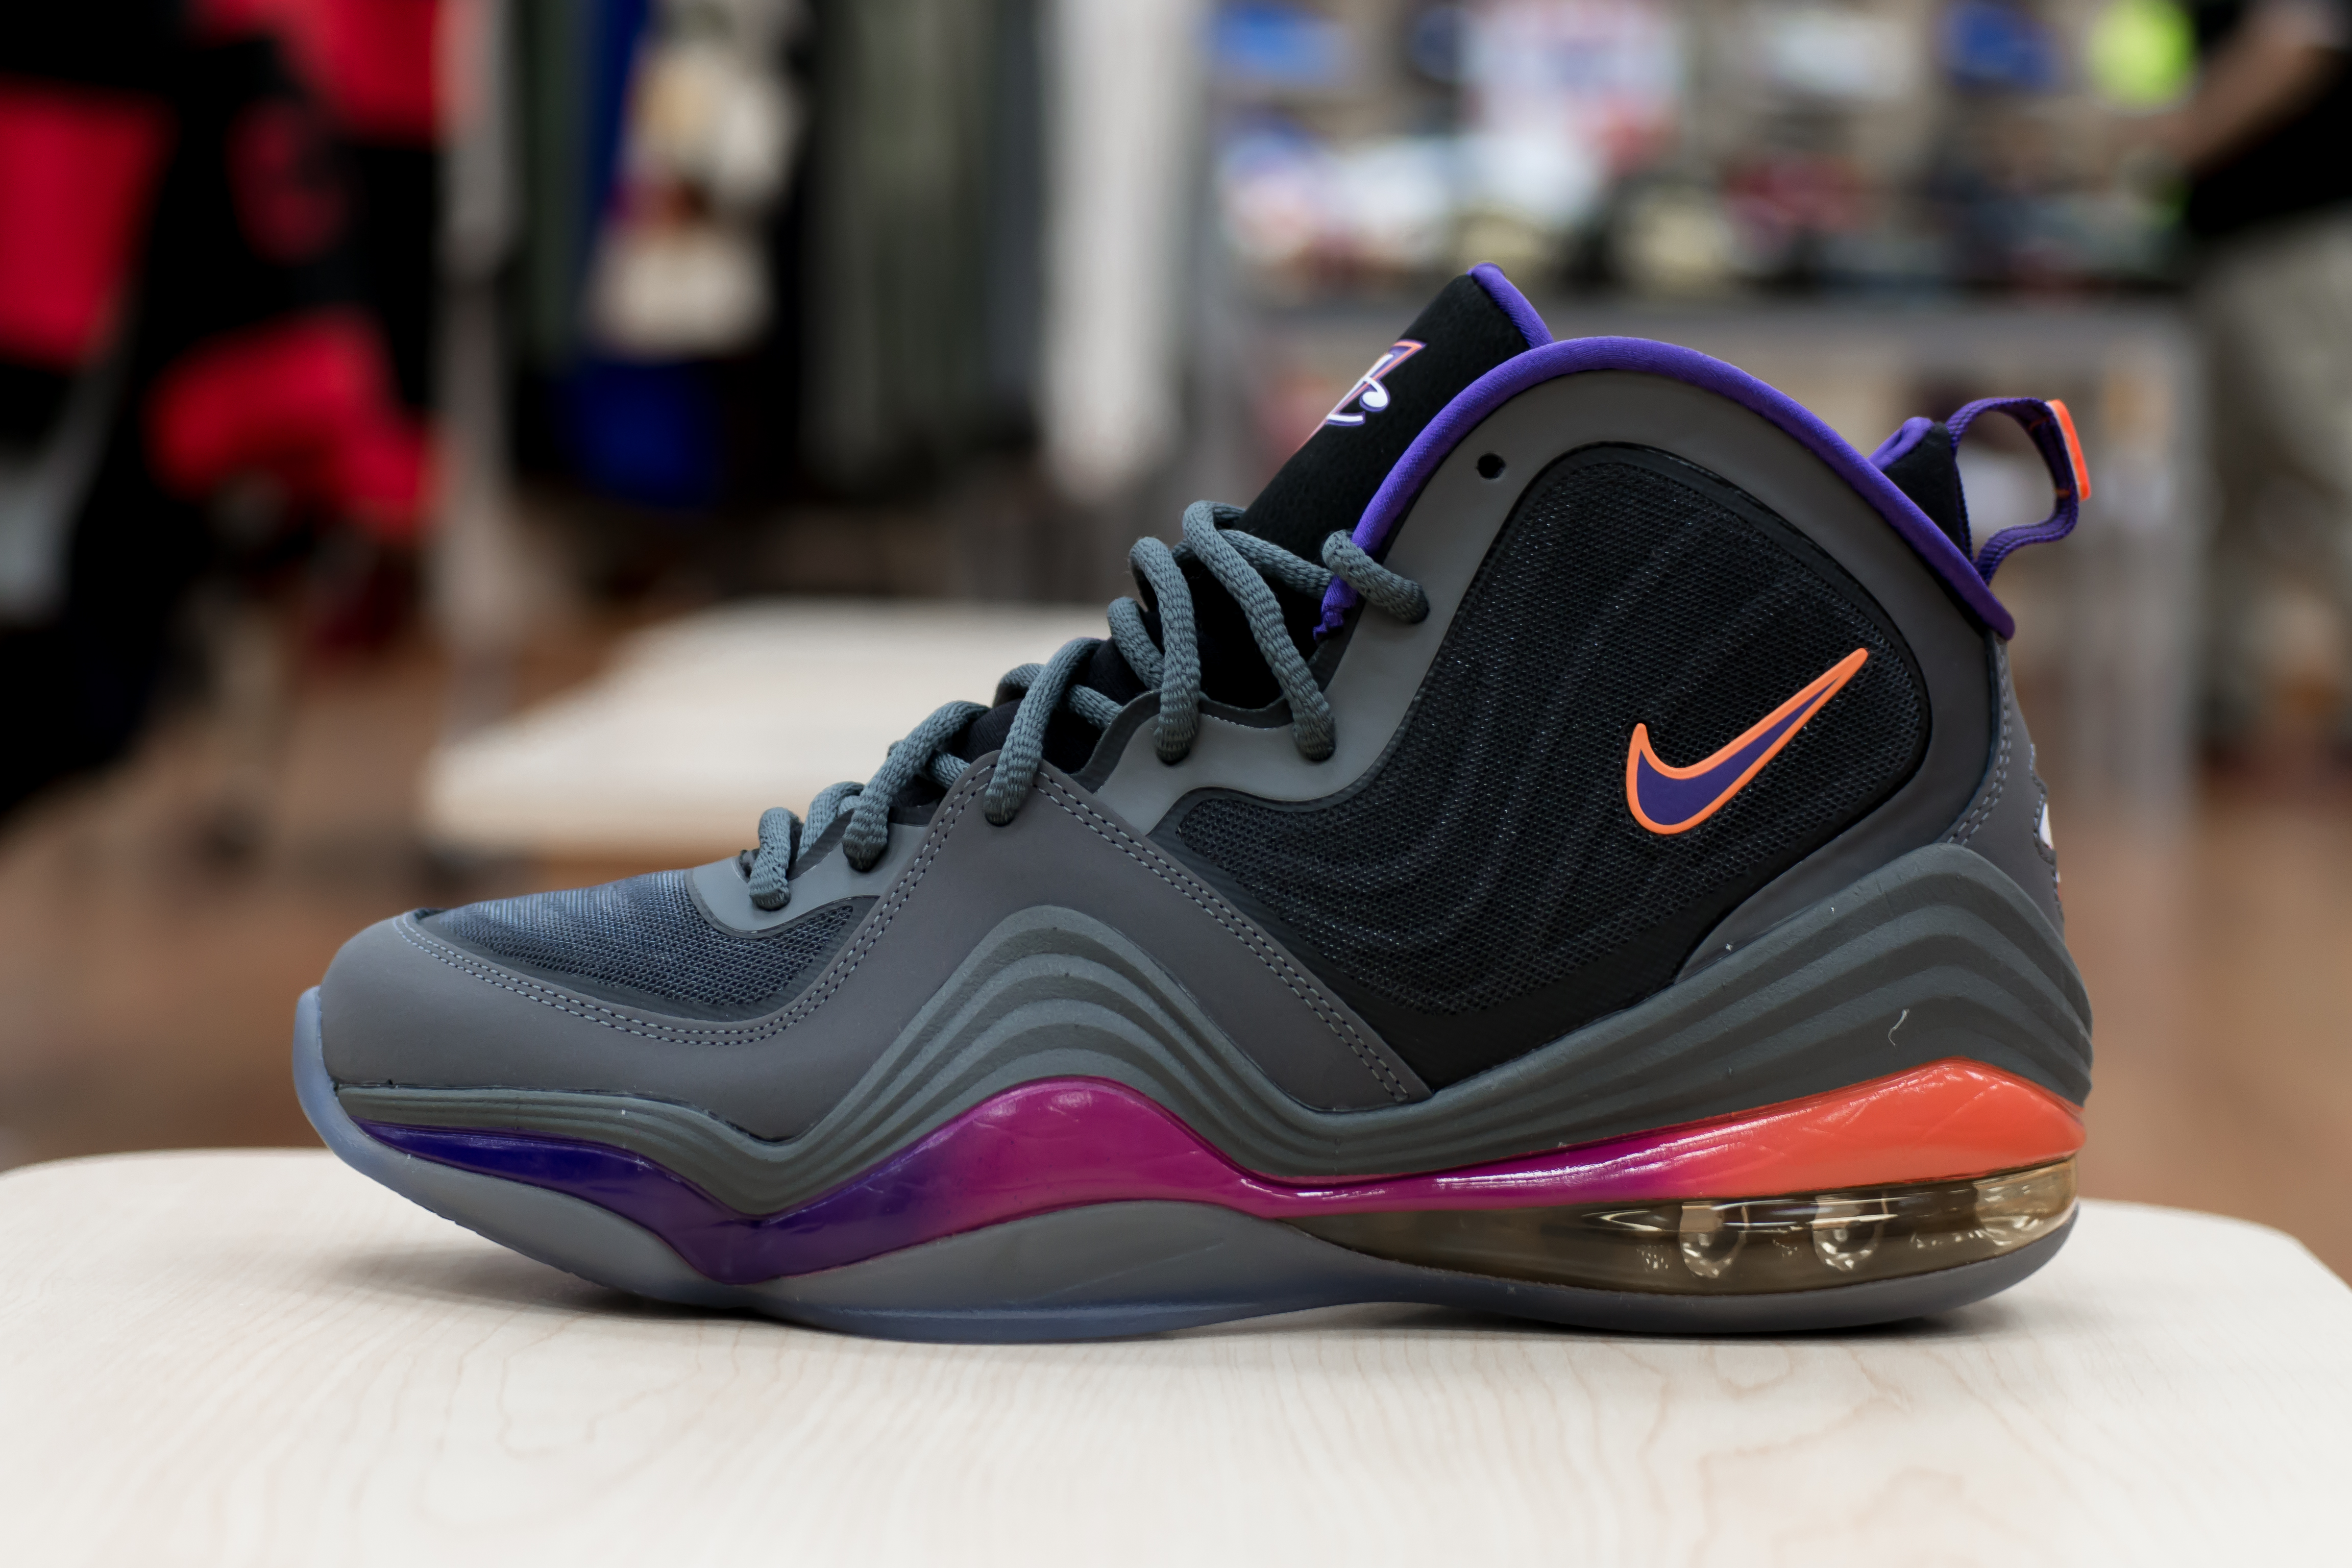 new style bc38b fdc5b Having played for the Phoenix Suns from 1999 to 2004, Penny Hardaway is set  to see a Dark Grey Black-Rave Pink-Court Purple colorway of his signature  Nike ...